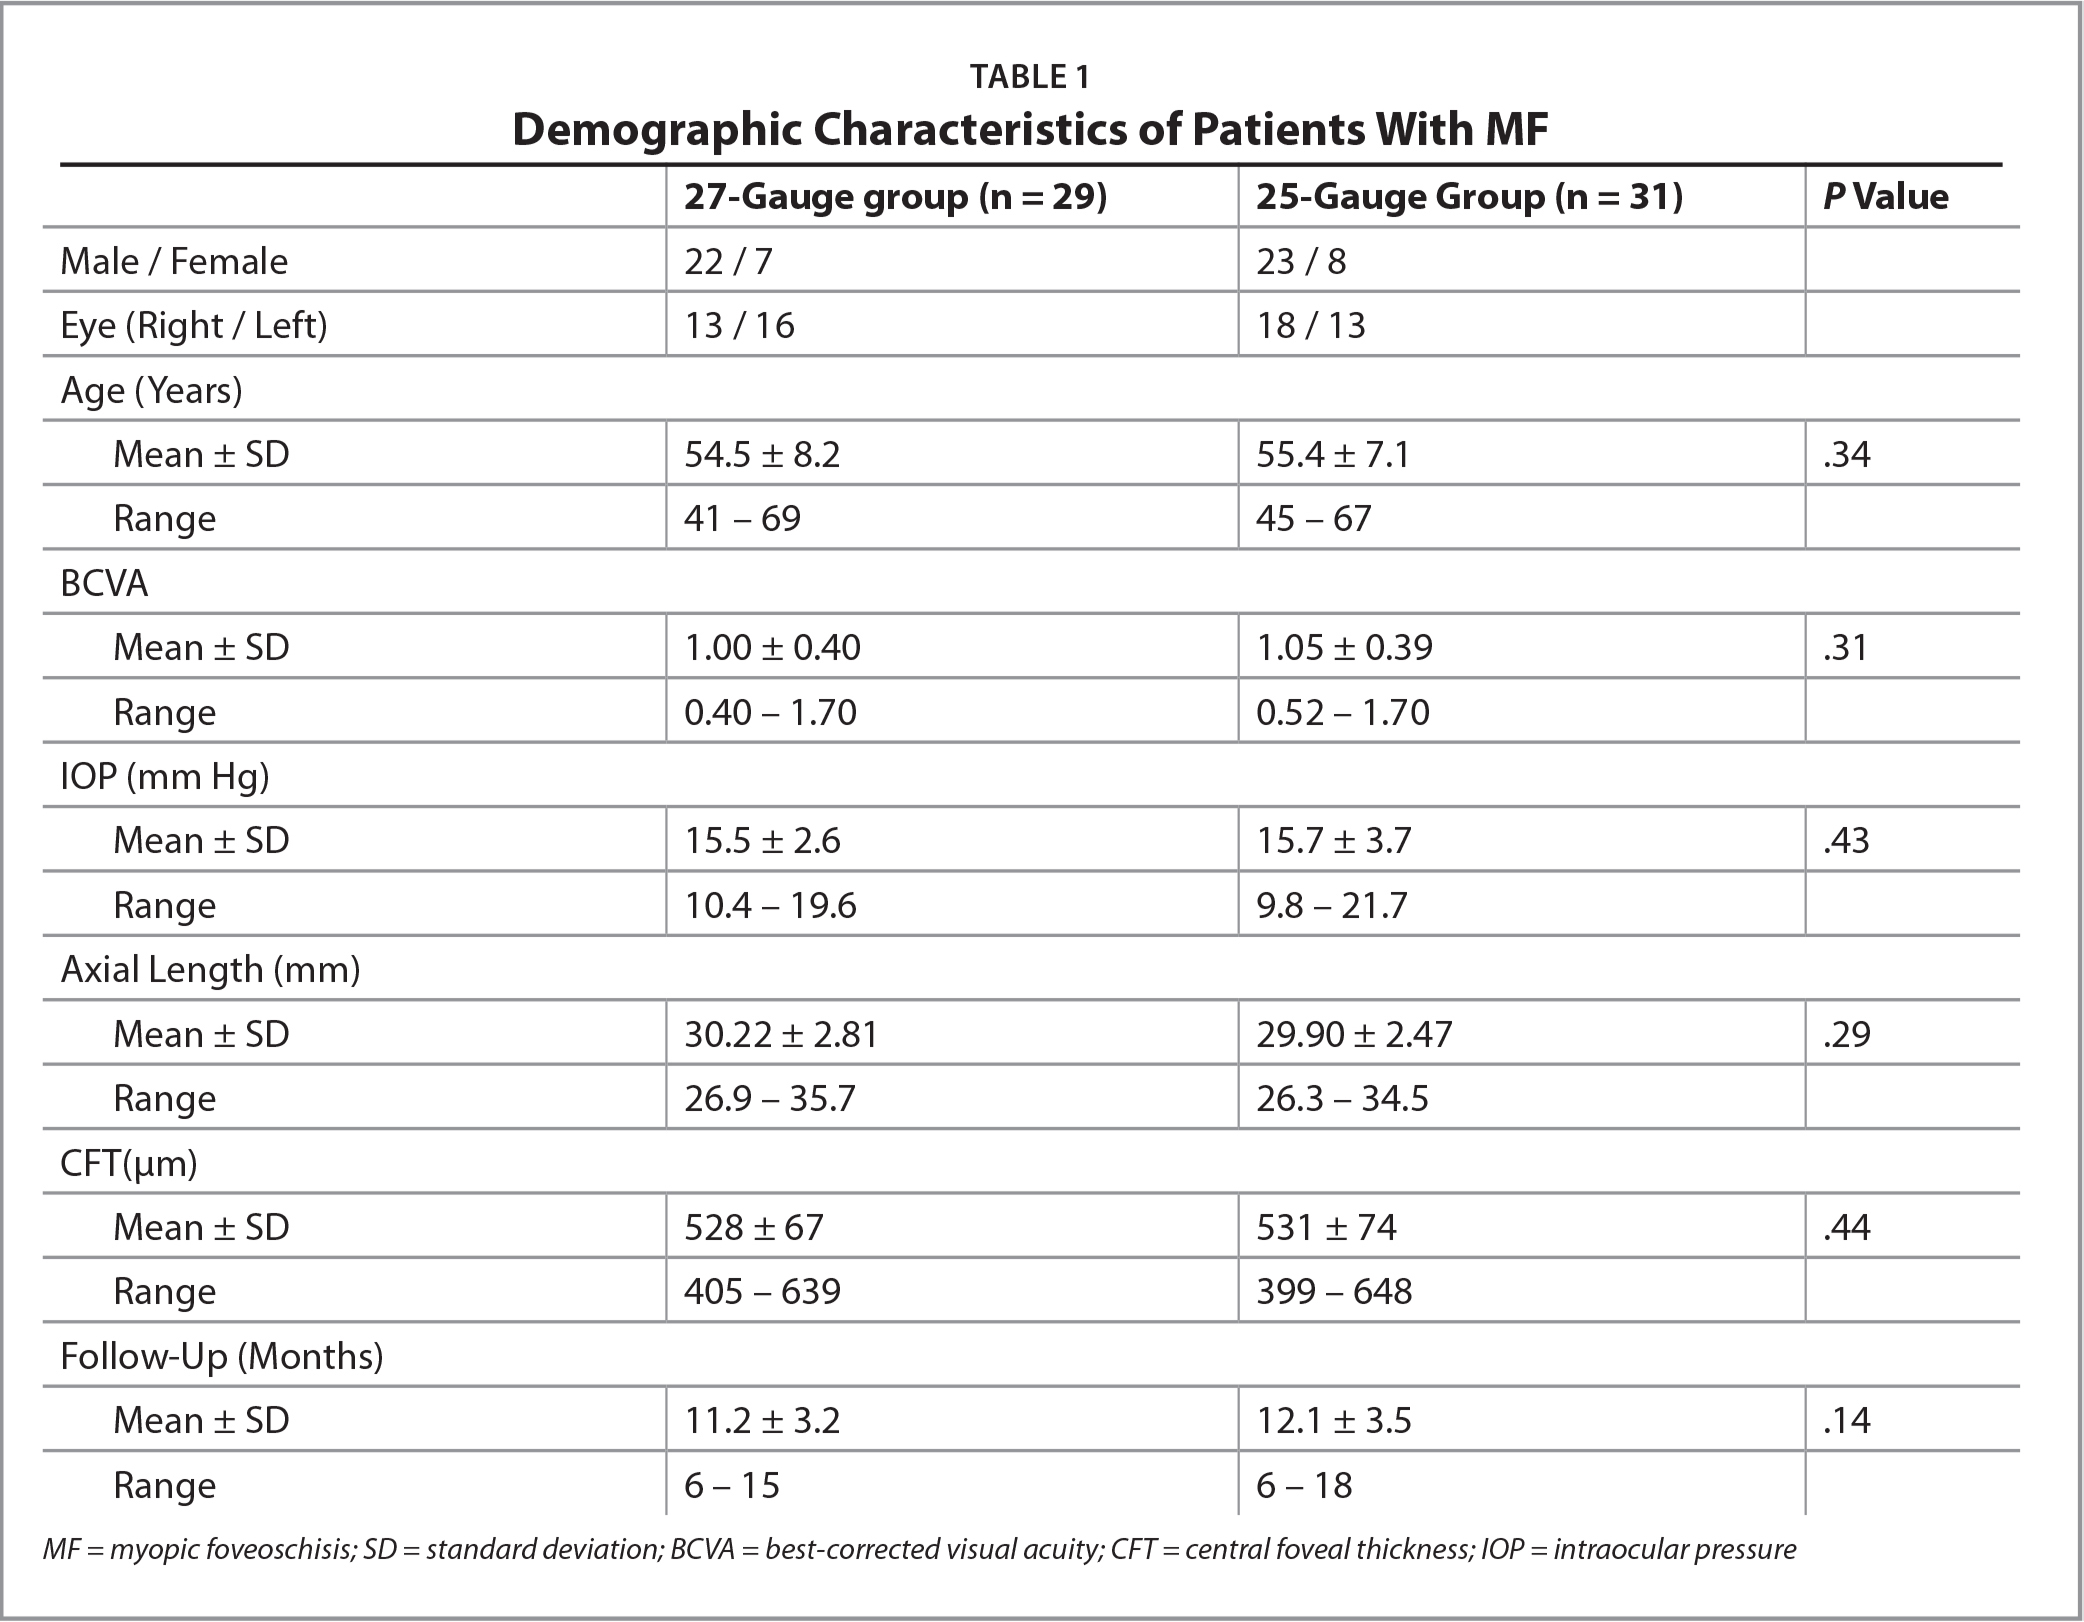 Demographic Characteristics of Patients With MF